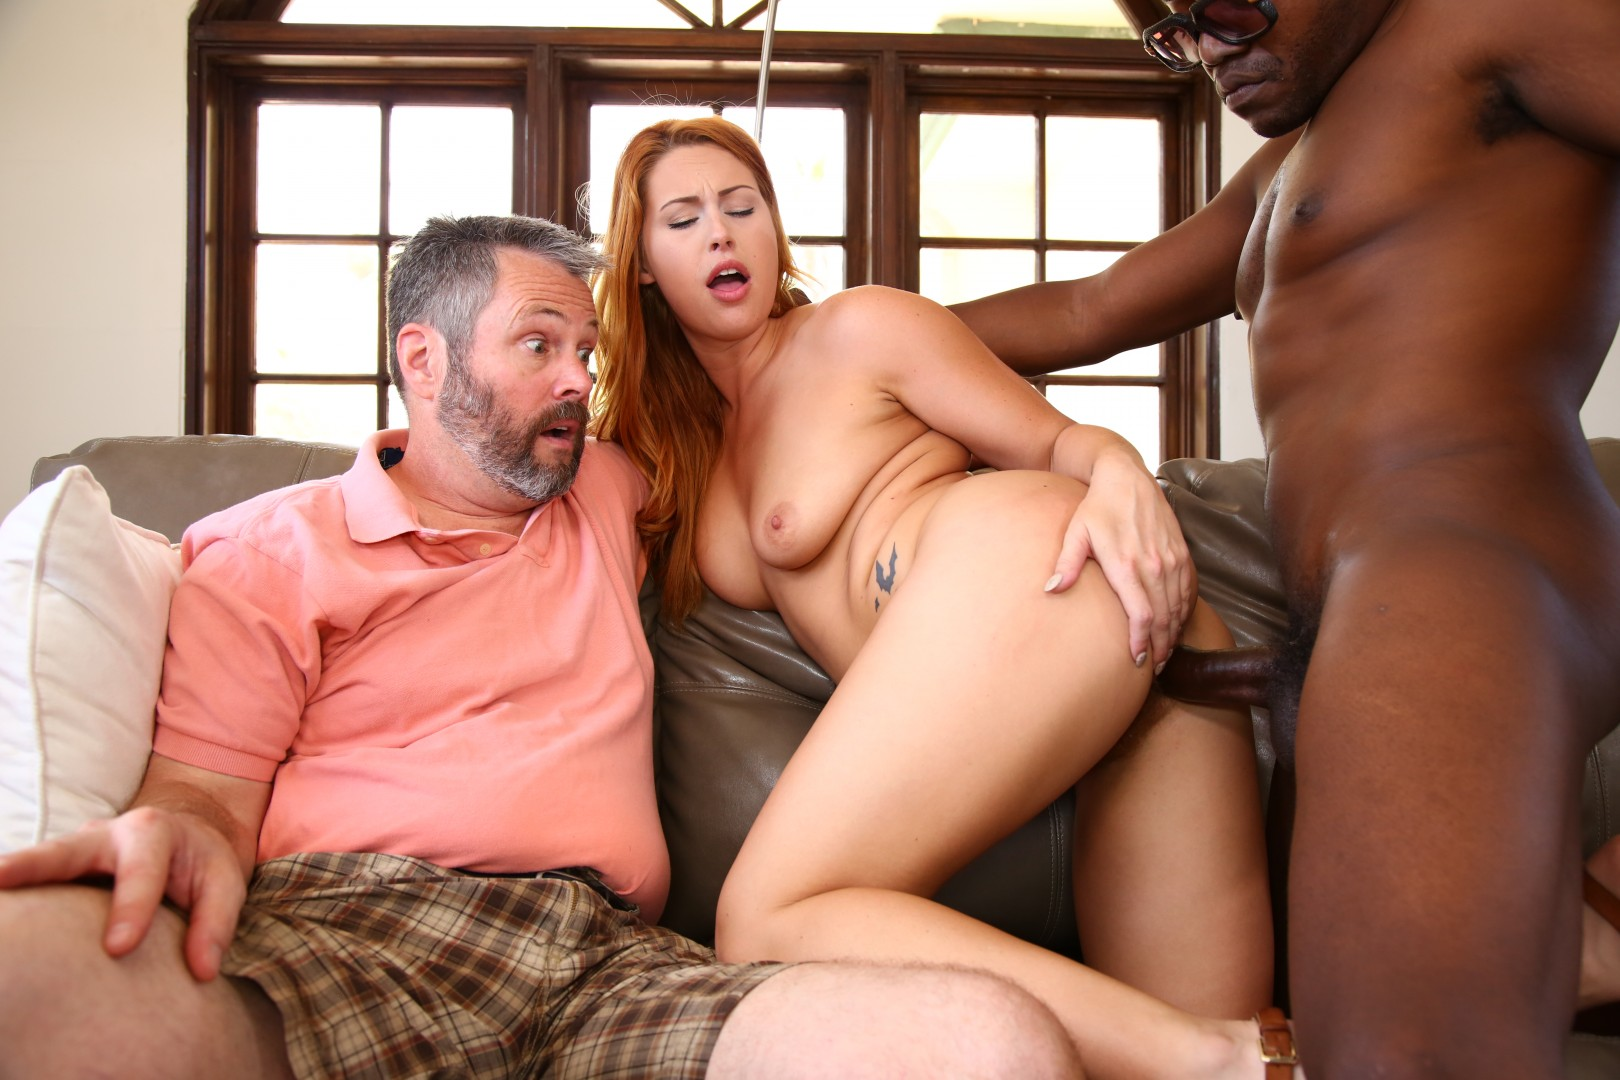 Interracial cuckold site